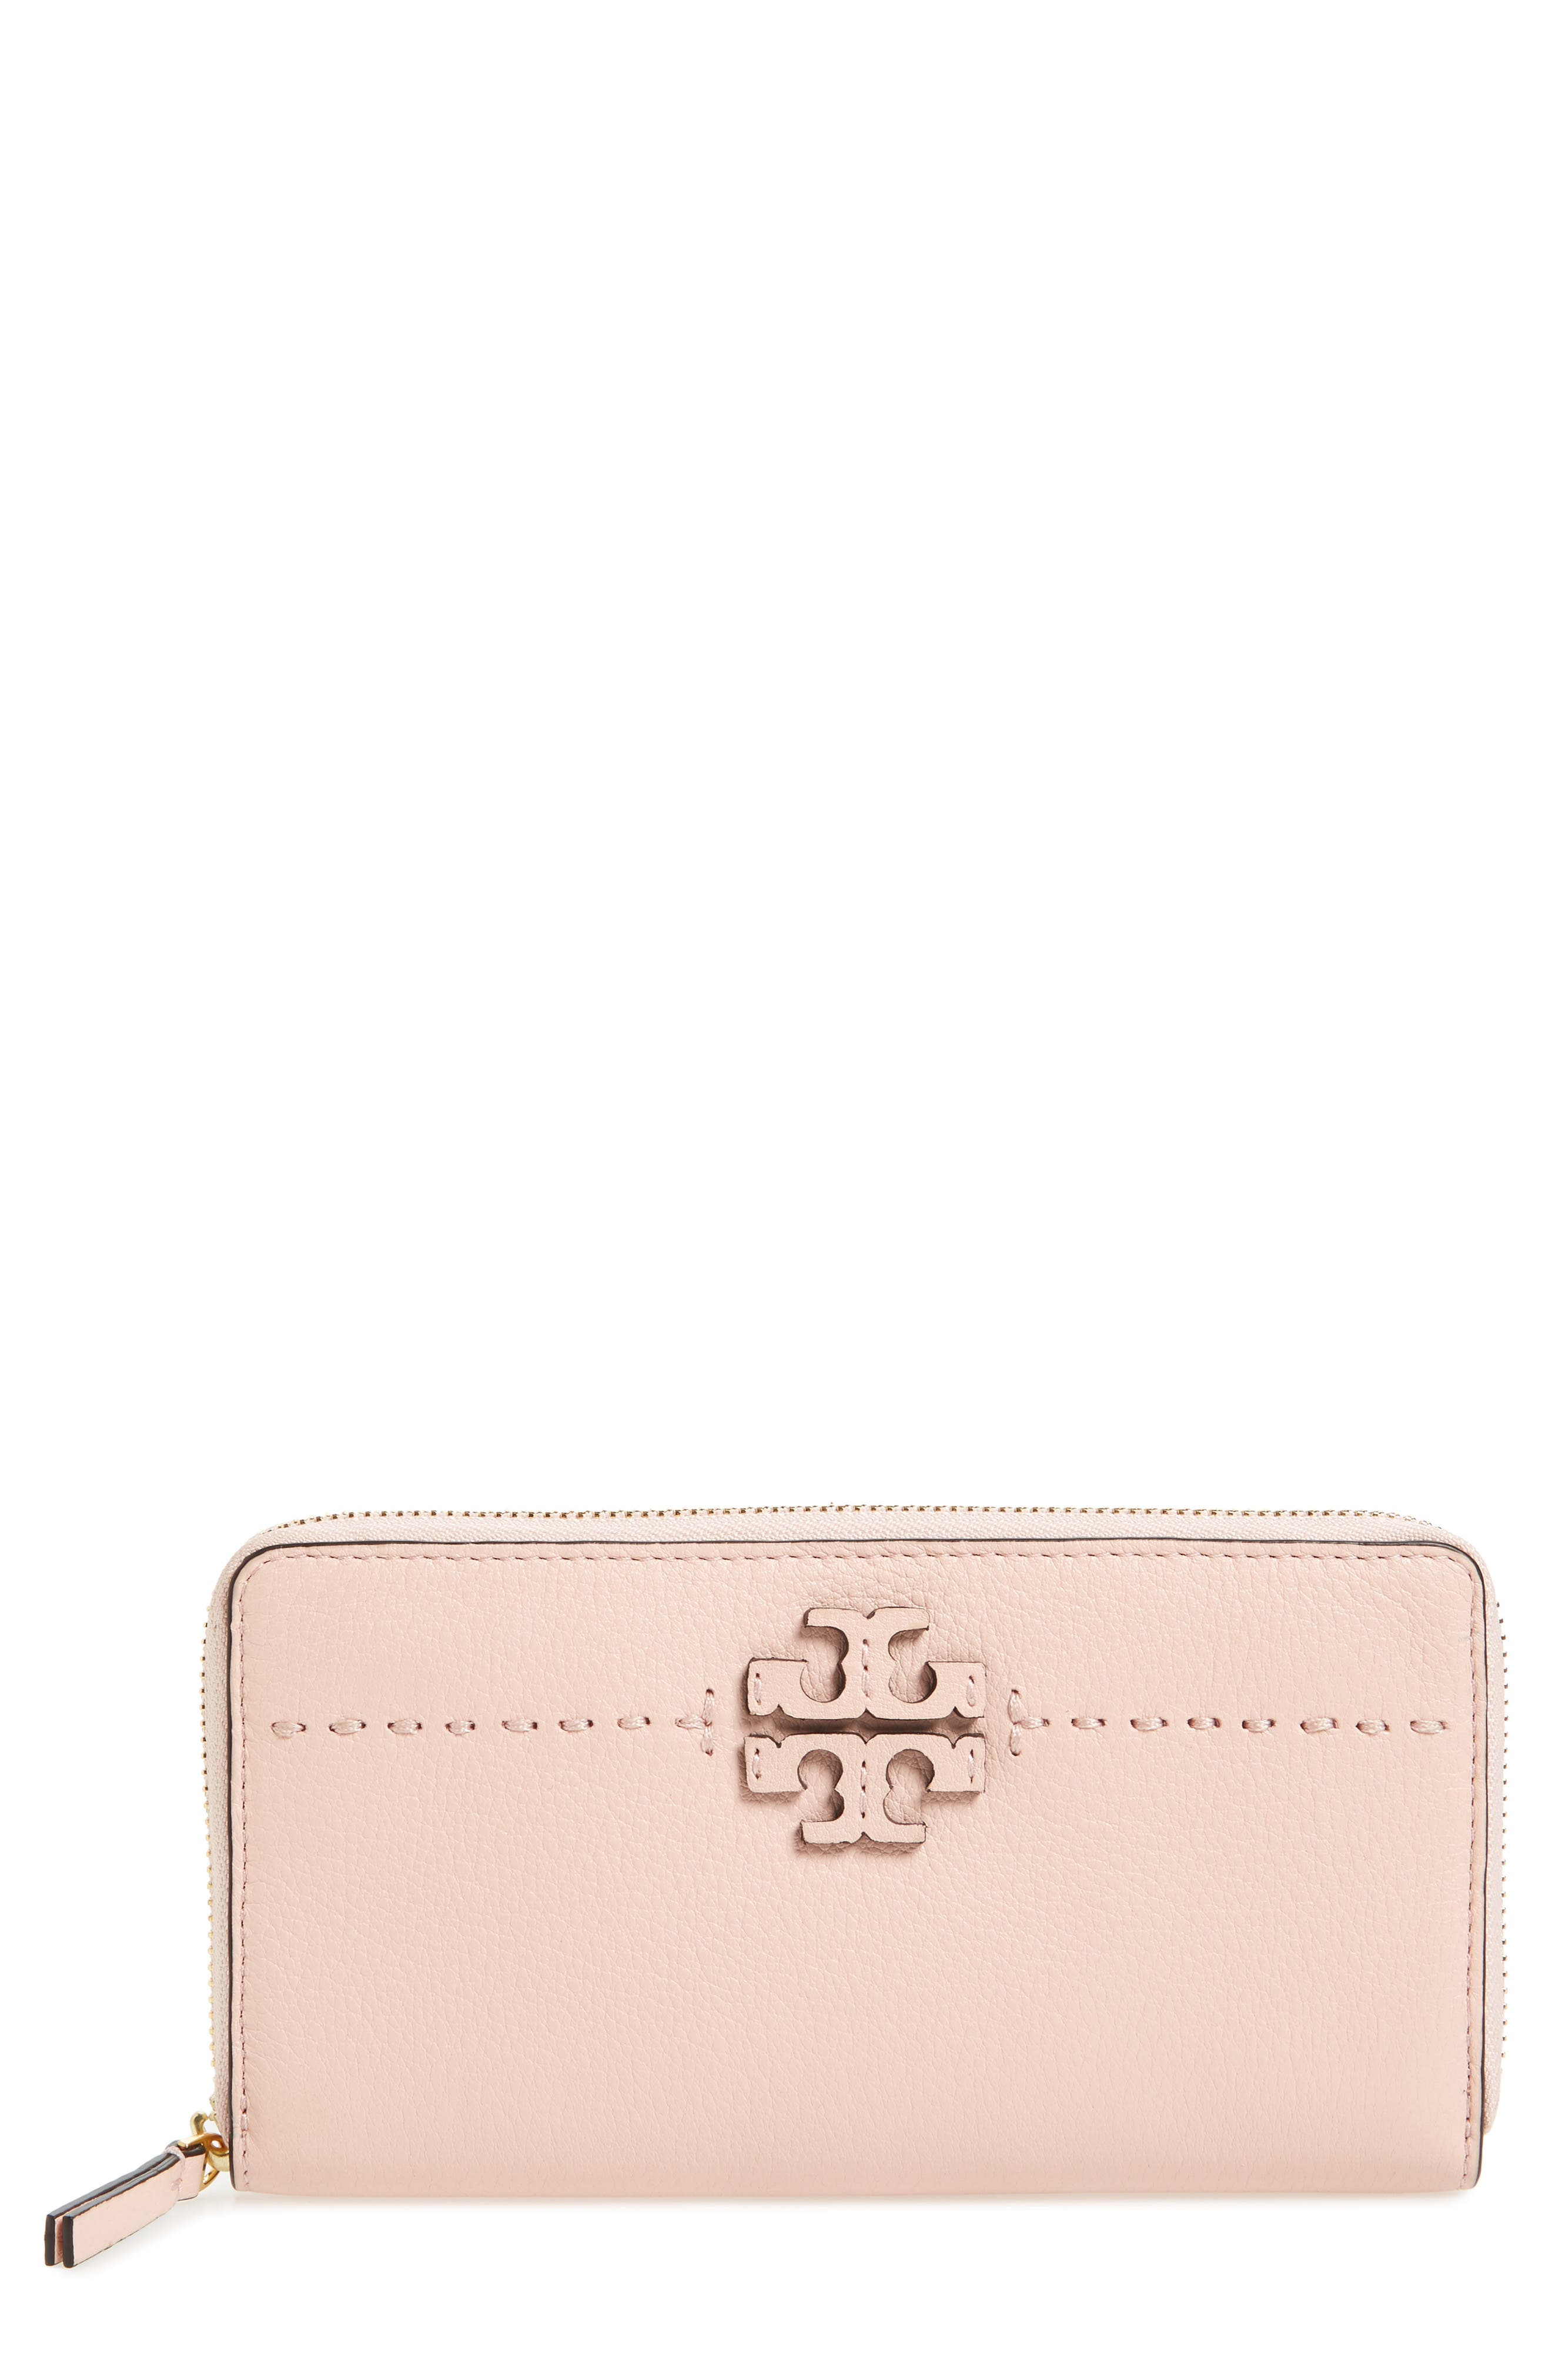 Main Image - Tory Burch McGraw Leather Continental Zip Wallet